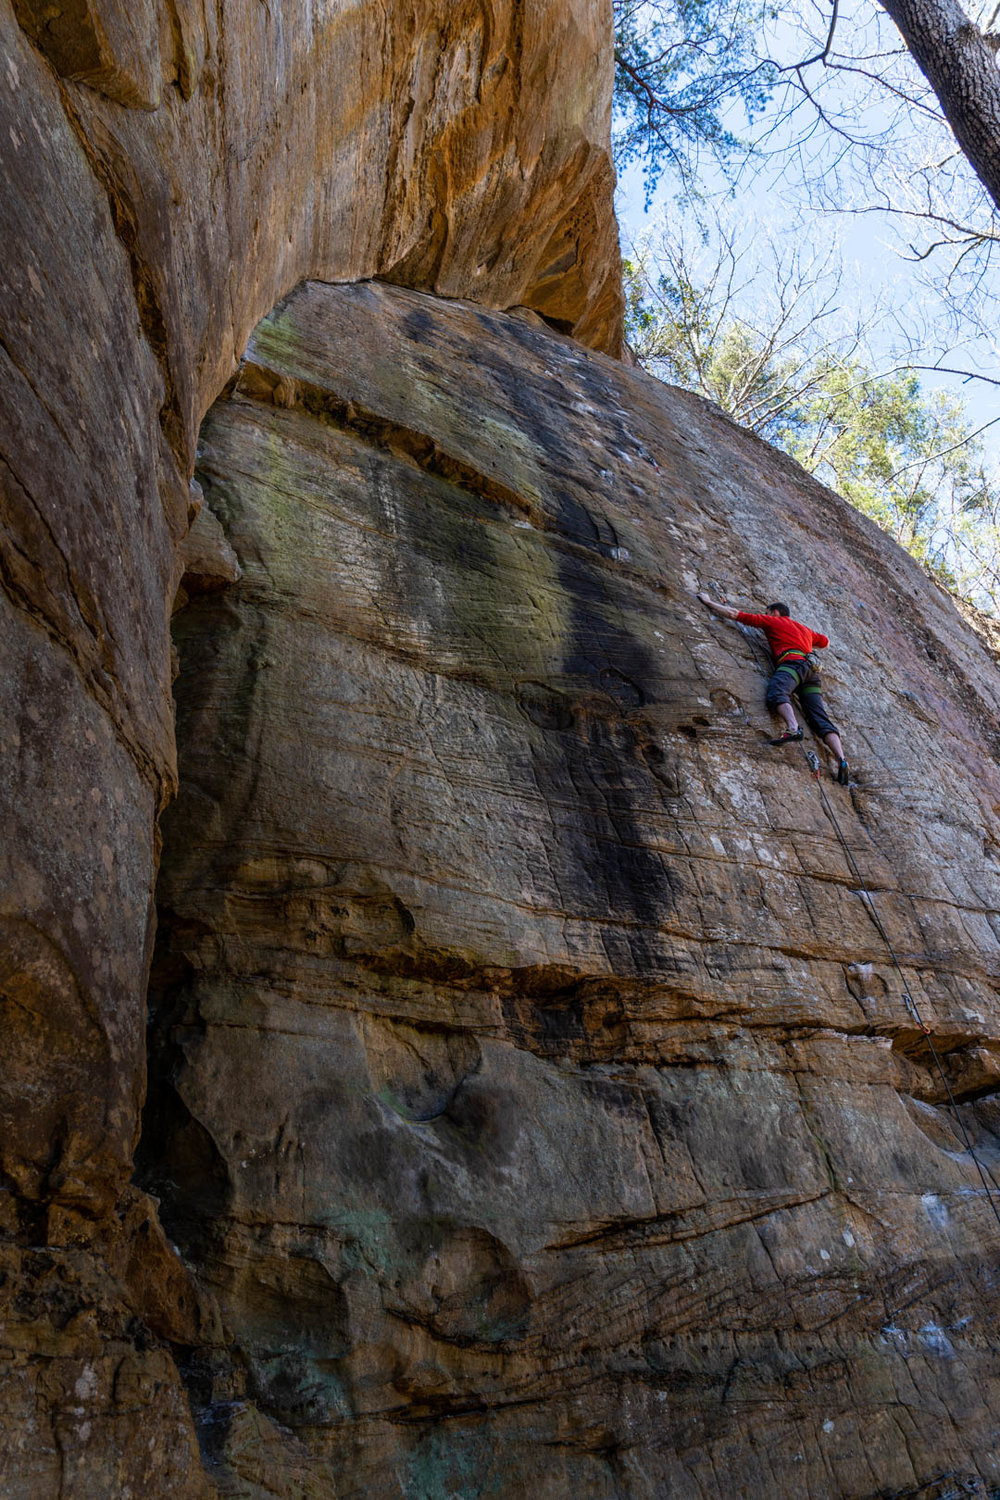 Me on the warm up Brown Eyed Girl 5.10a